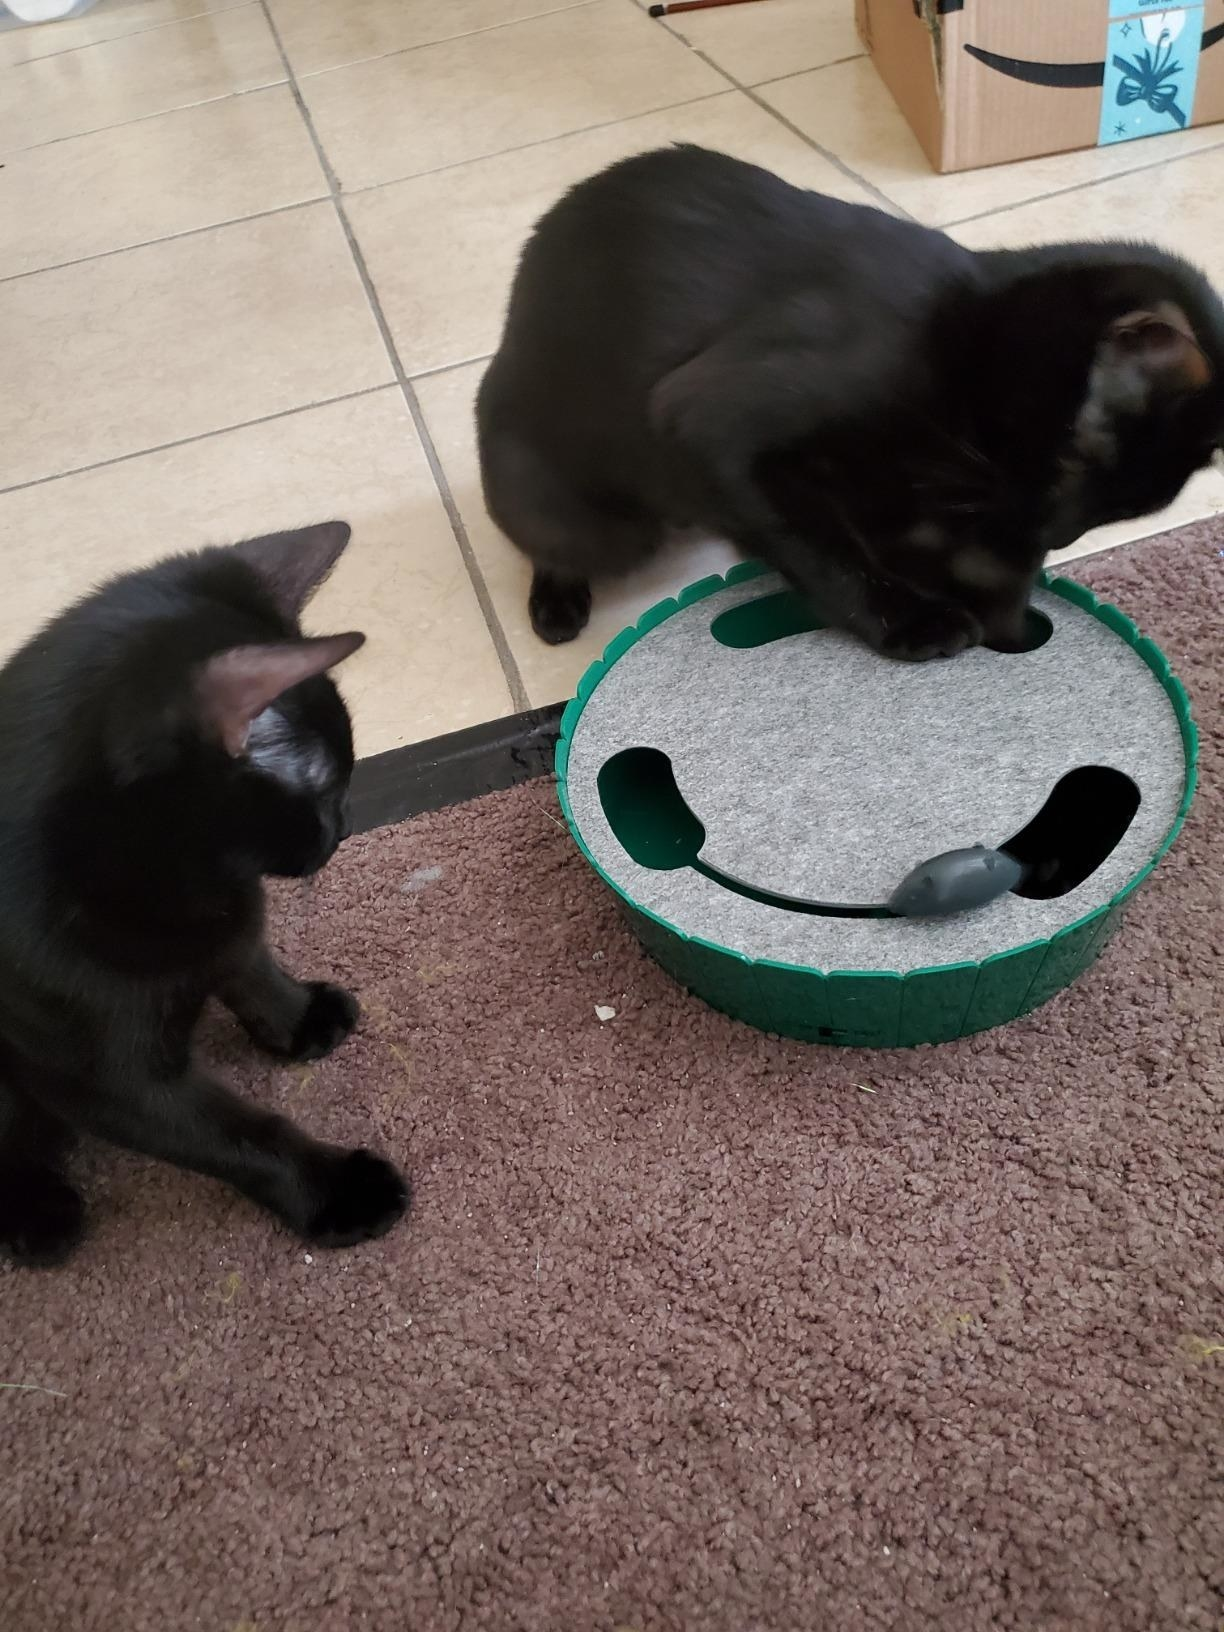 Two cats play with the toy, which is round, with a top with a carpeted top with three large holes that the mouse emerges from